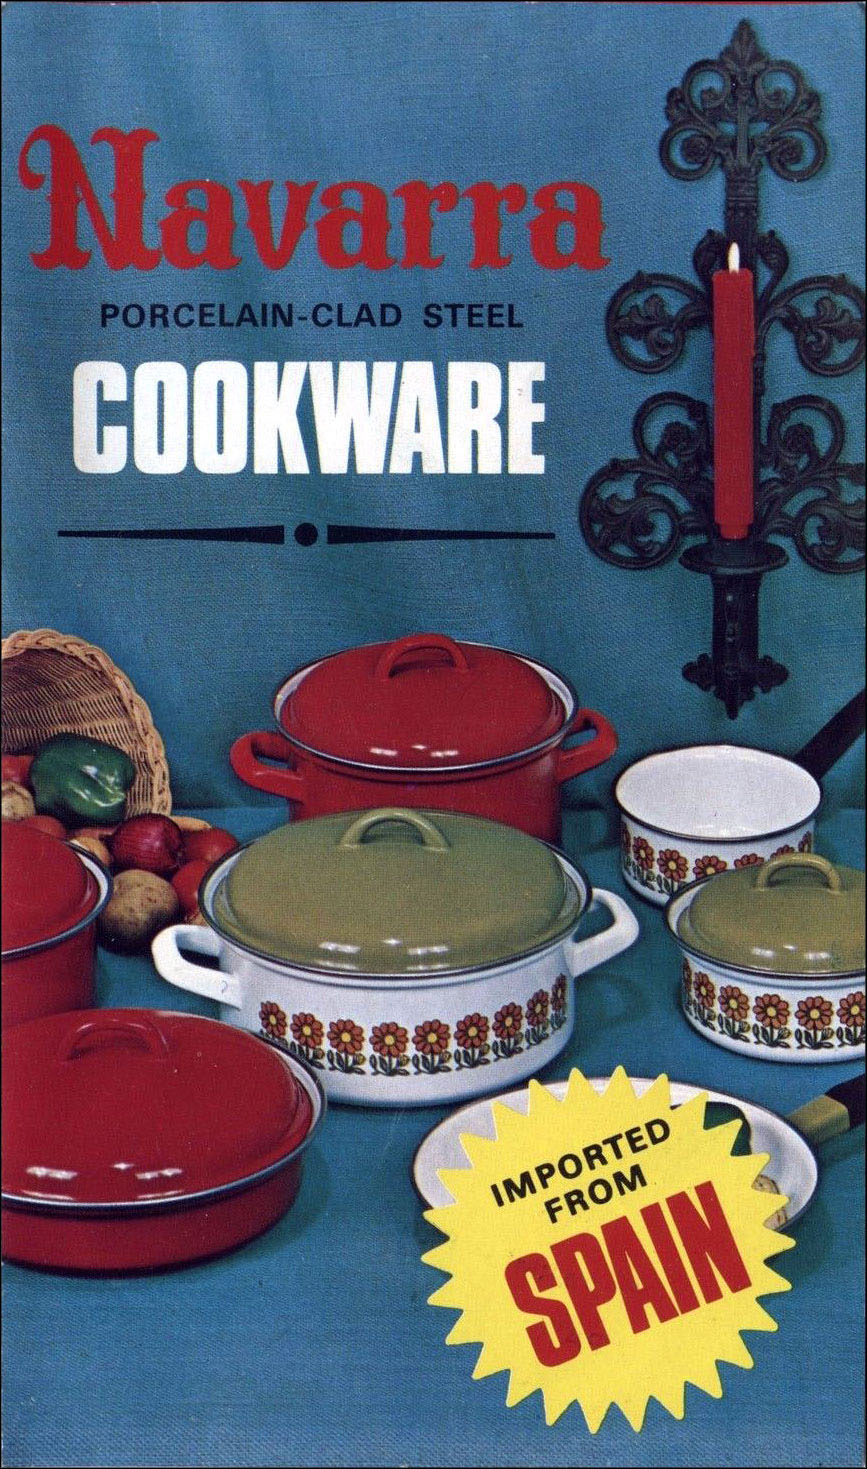 Navarra Porcelain-Clad Steel Cookware Advertising Brochure